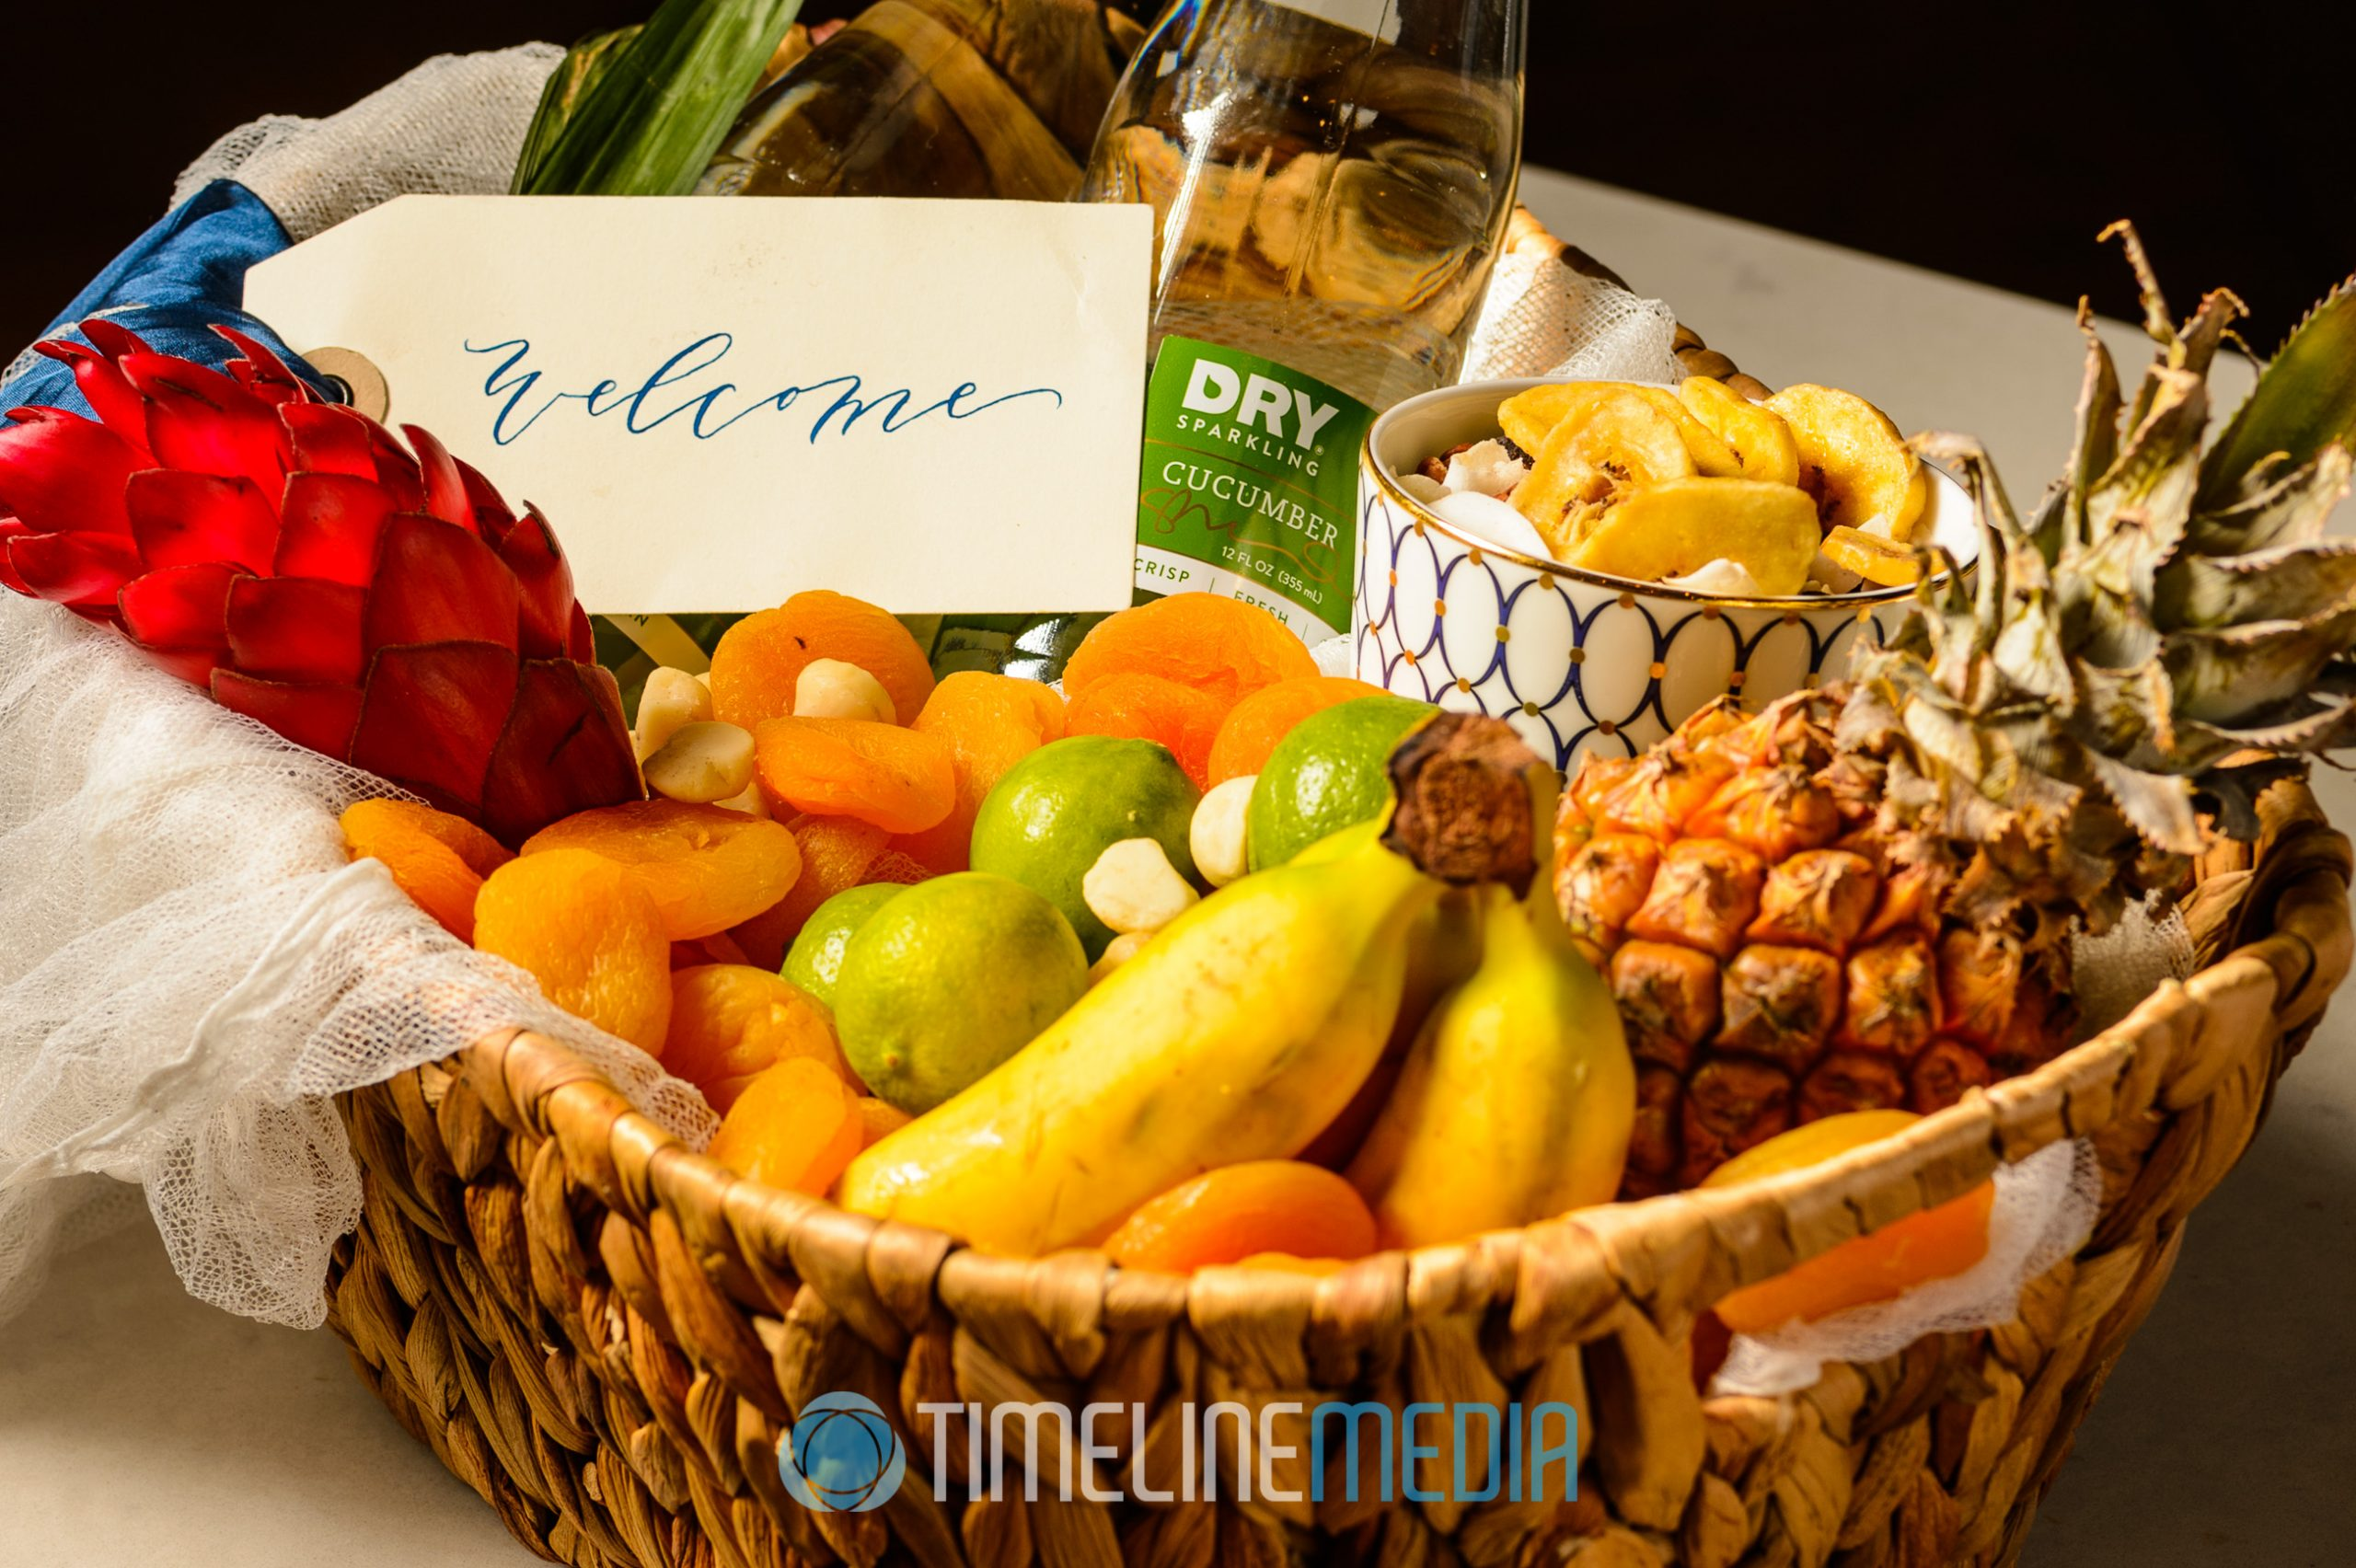 Gift Basket - Andrew Roby Events style shoot ©TimeLine Media